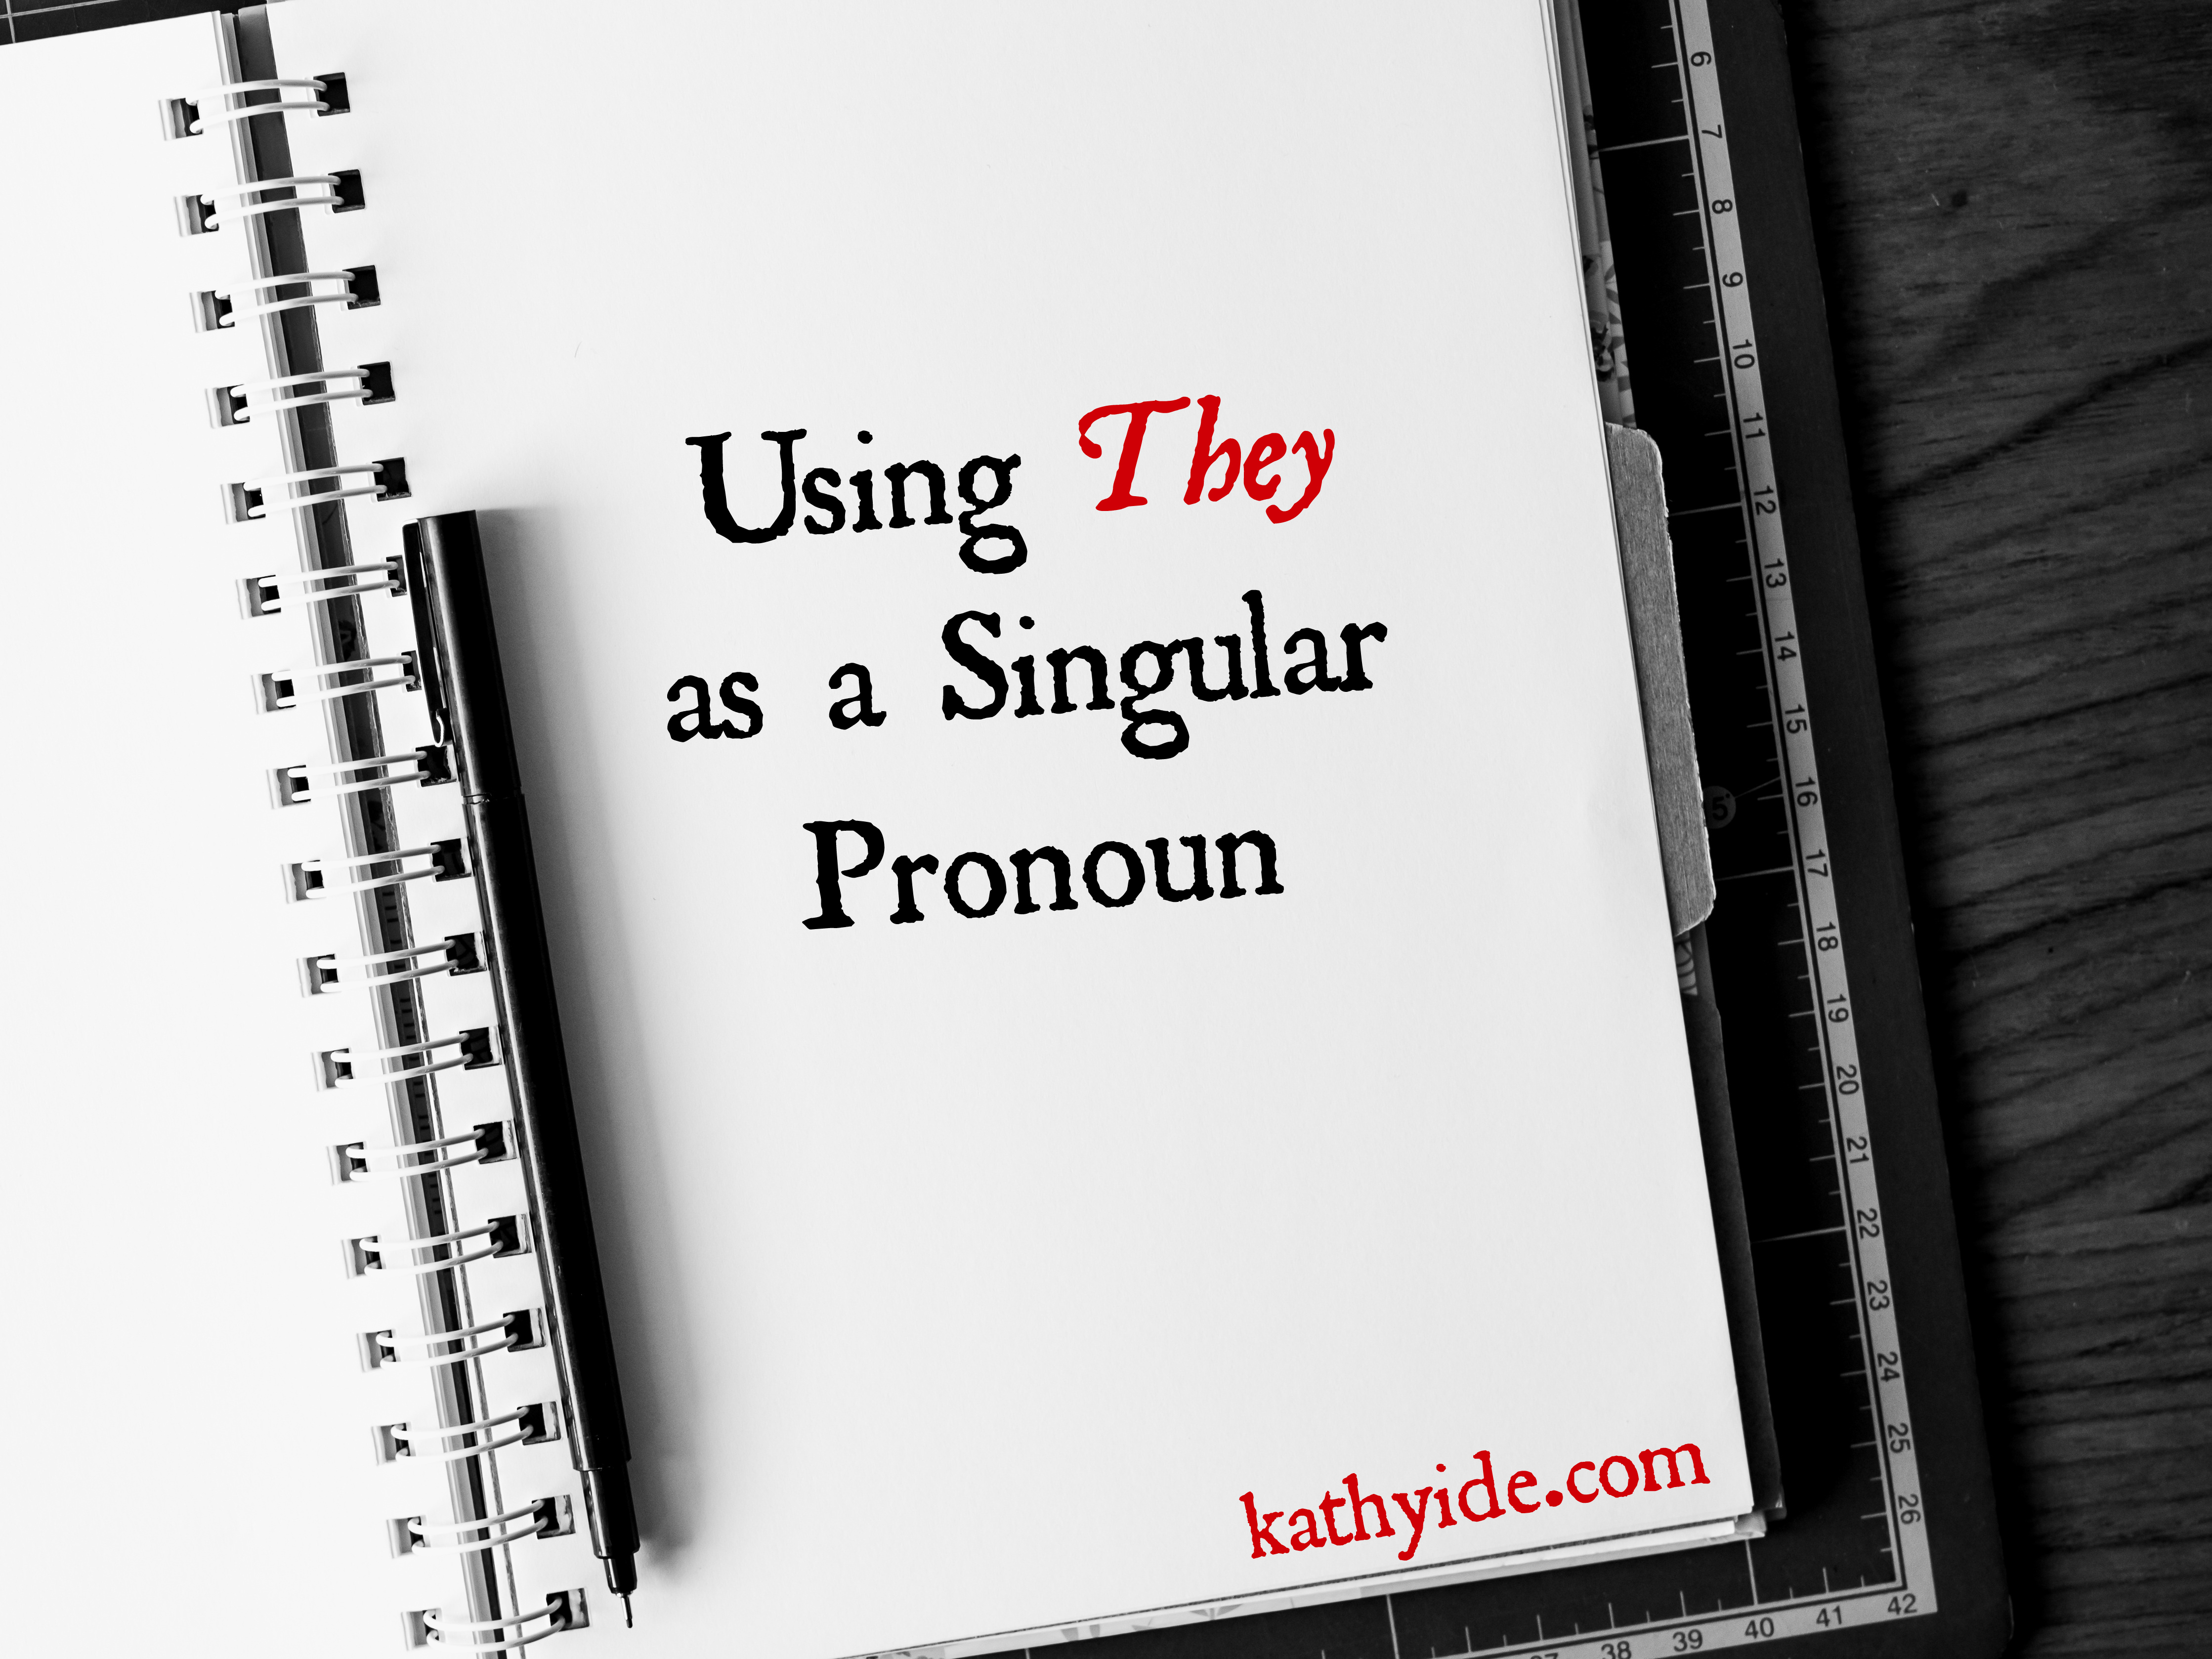 Using They as a Singular Pronoun